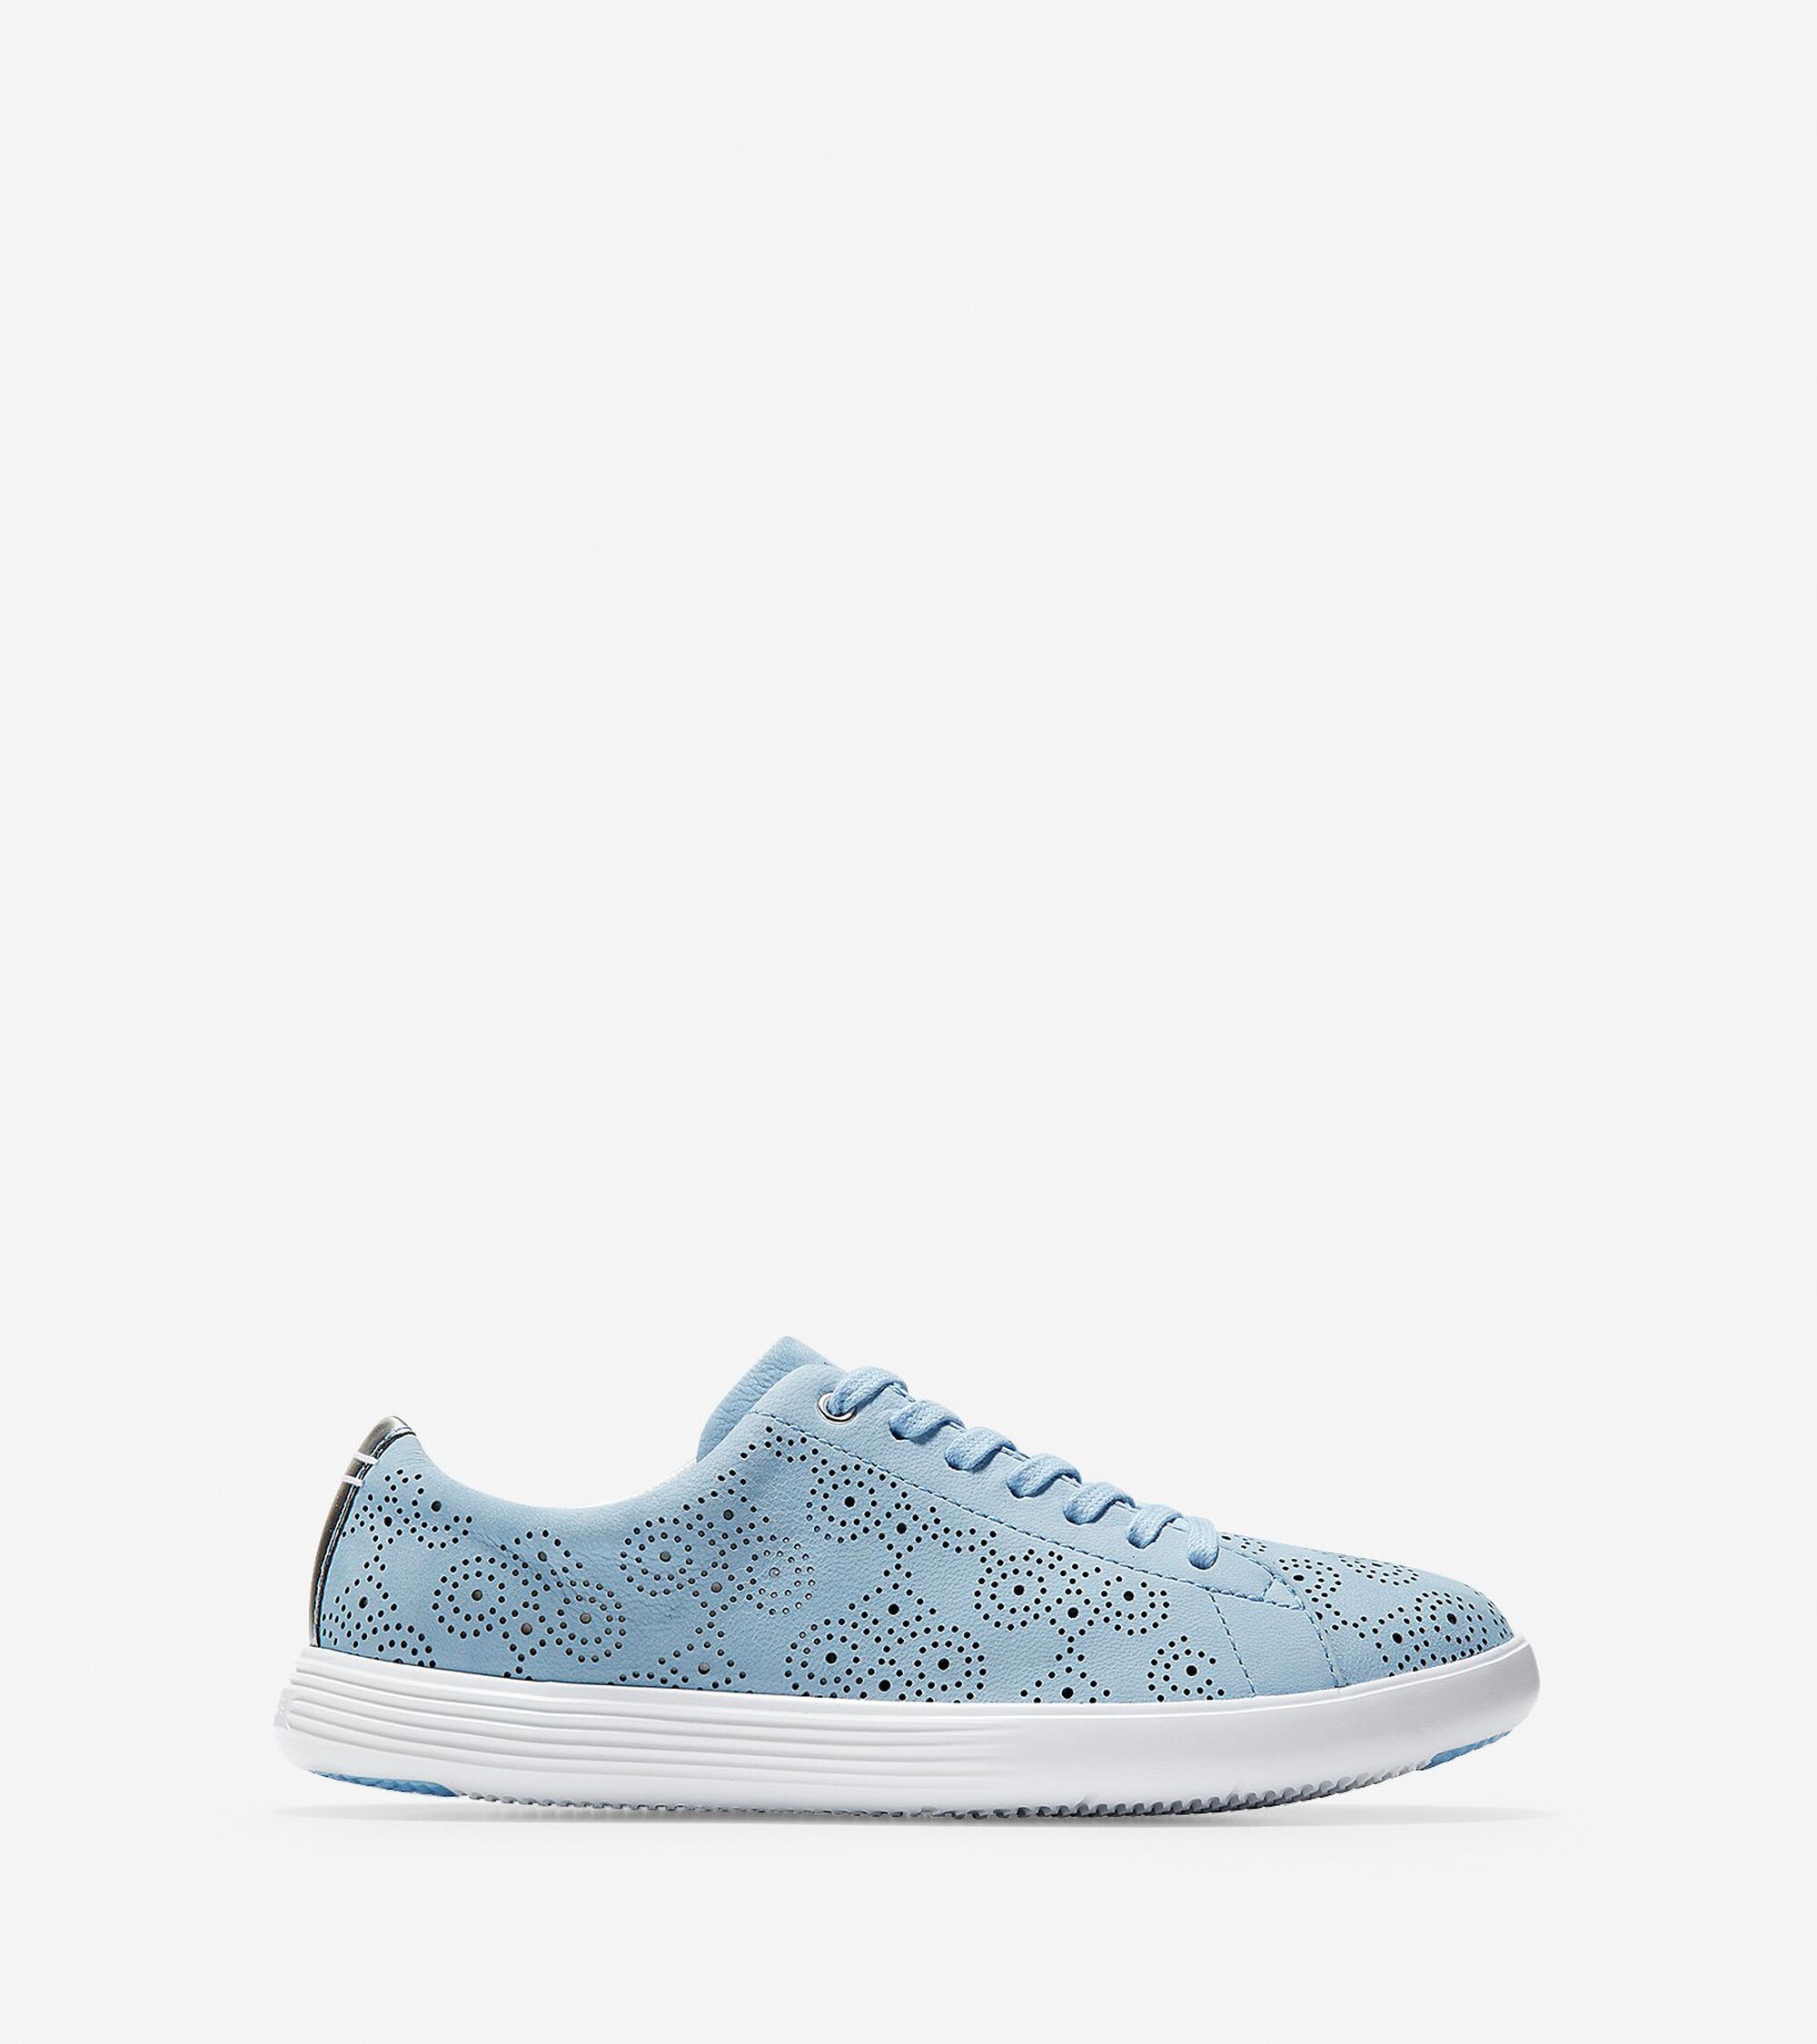 d98939559e5 Women s Grand Crosscourt Perforated Sneakers in Chambray